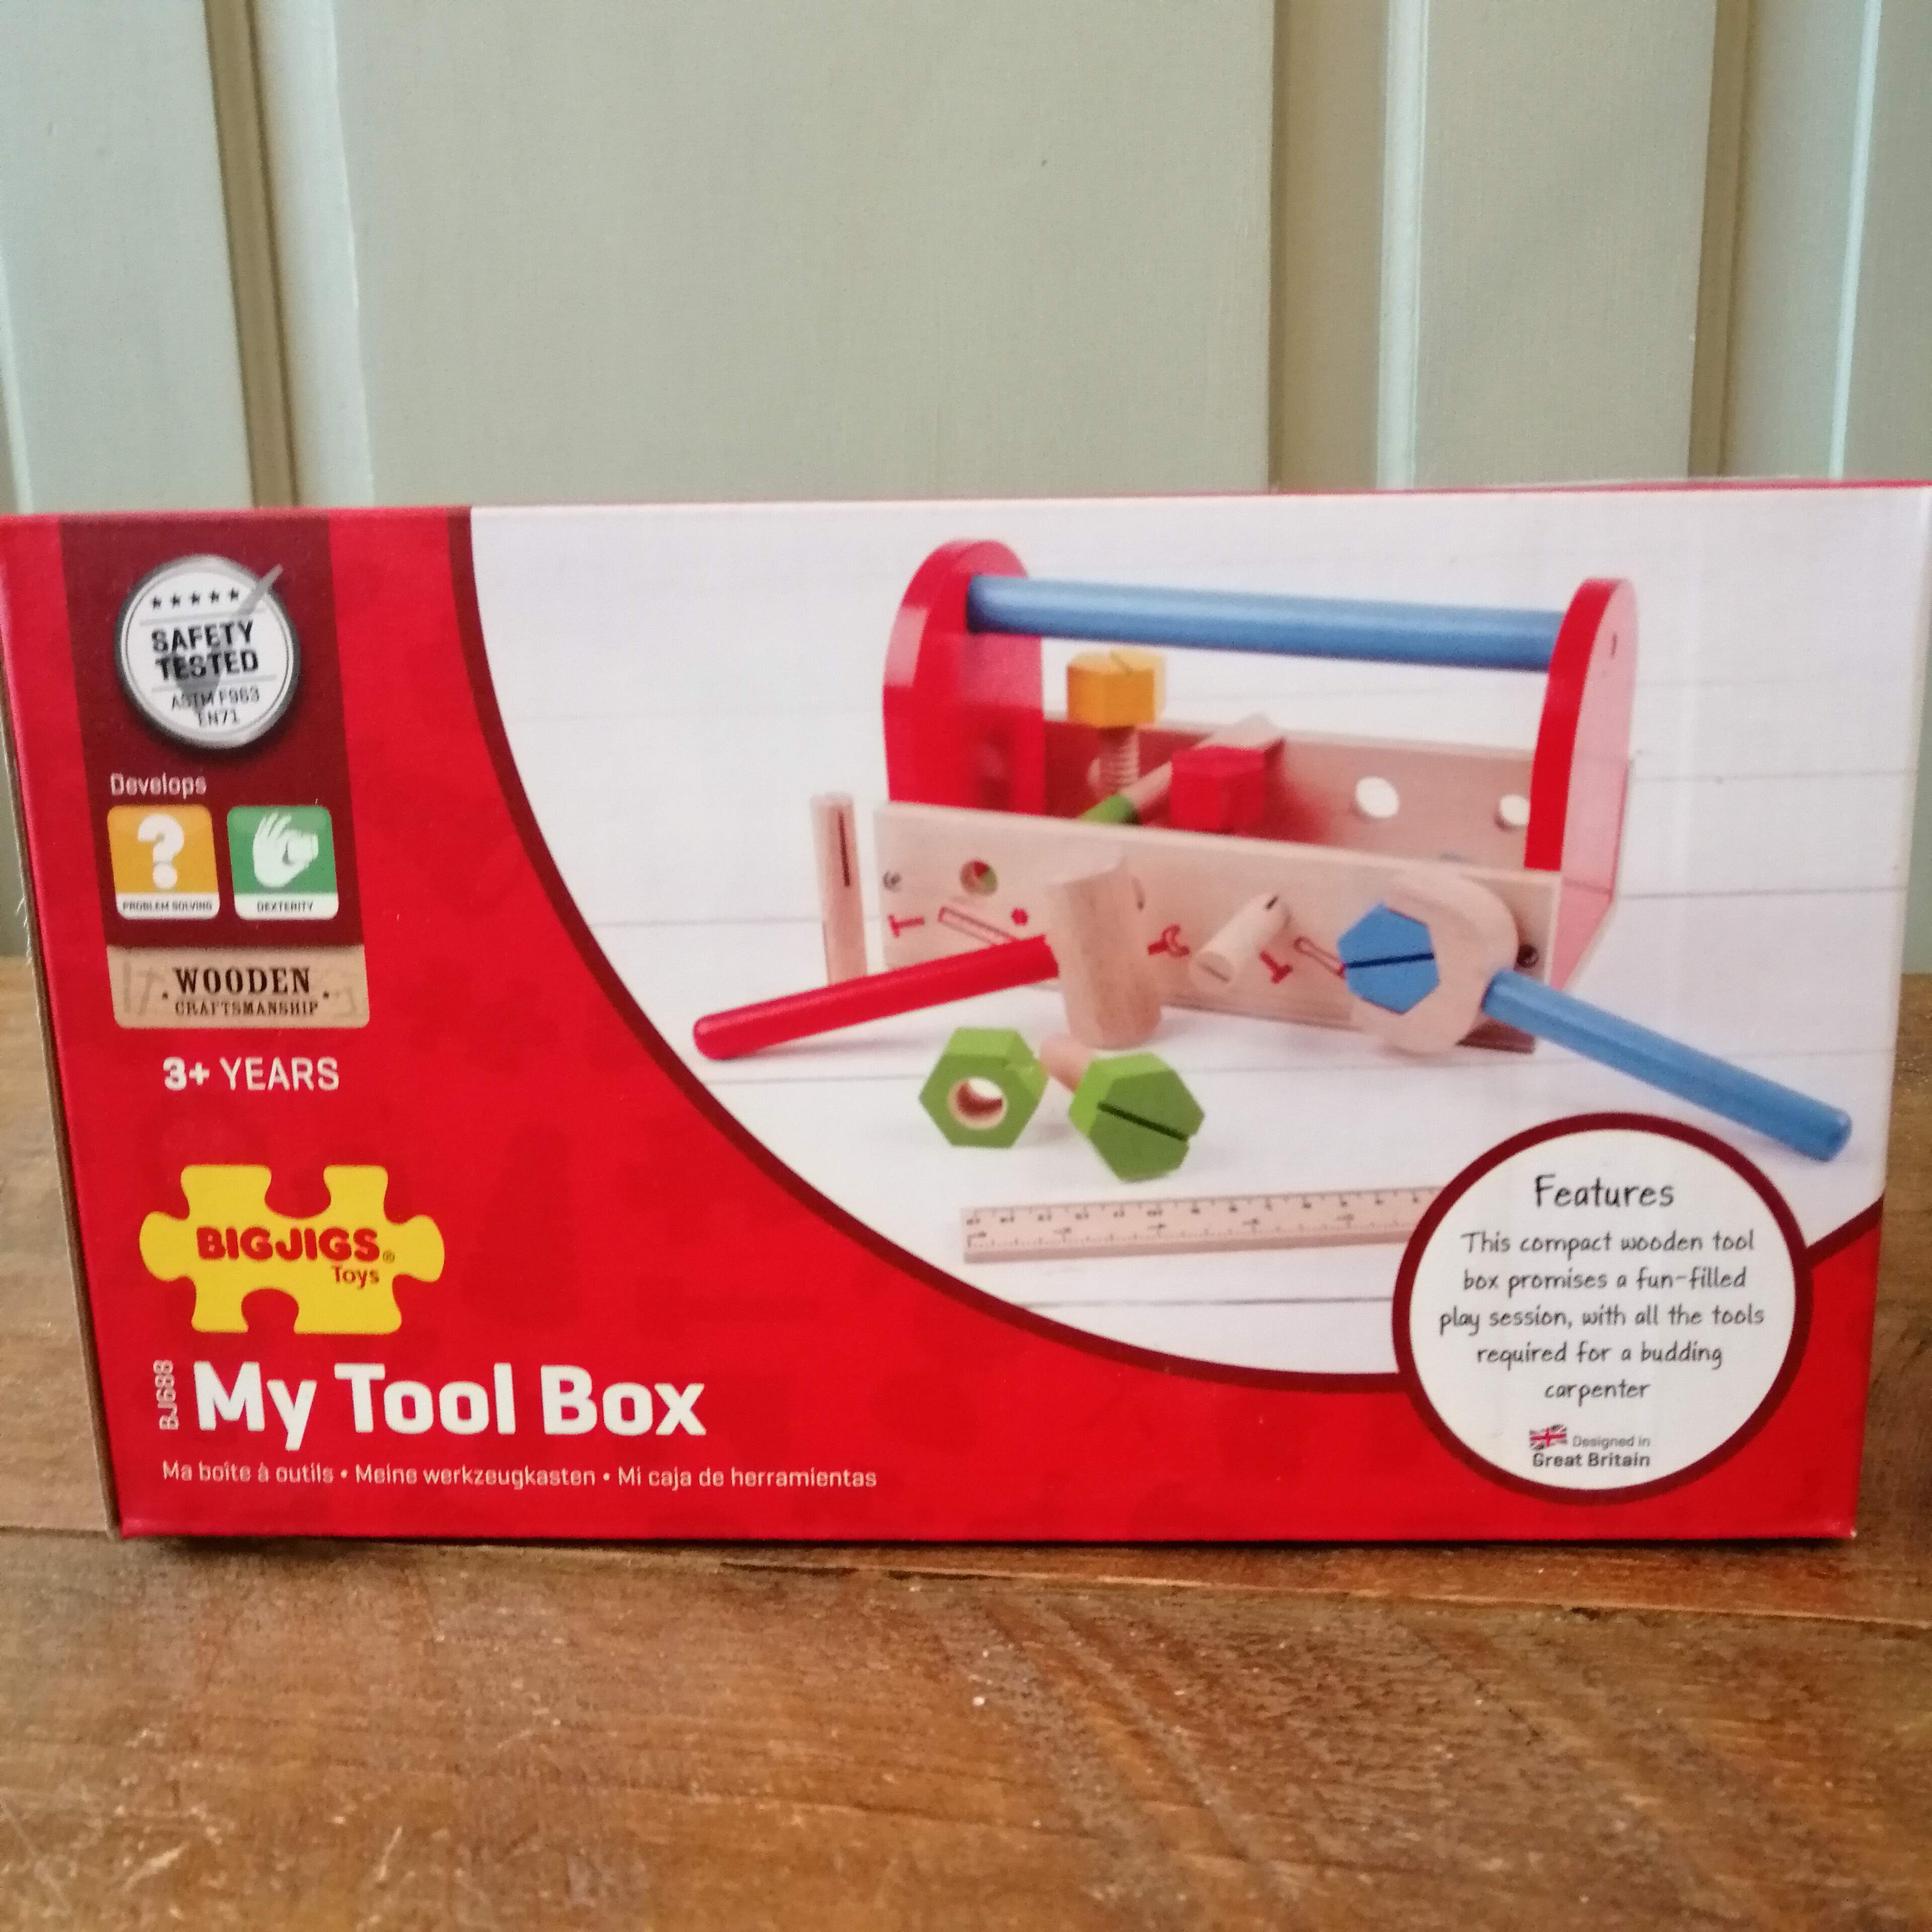 Bigjigs Wooden Toys 18 months +